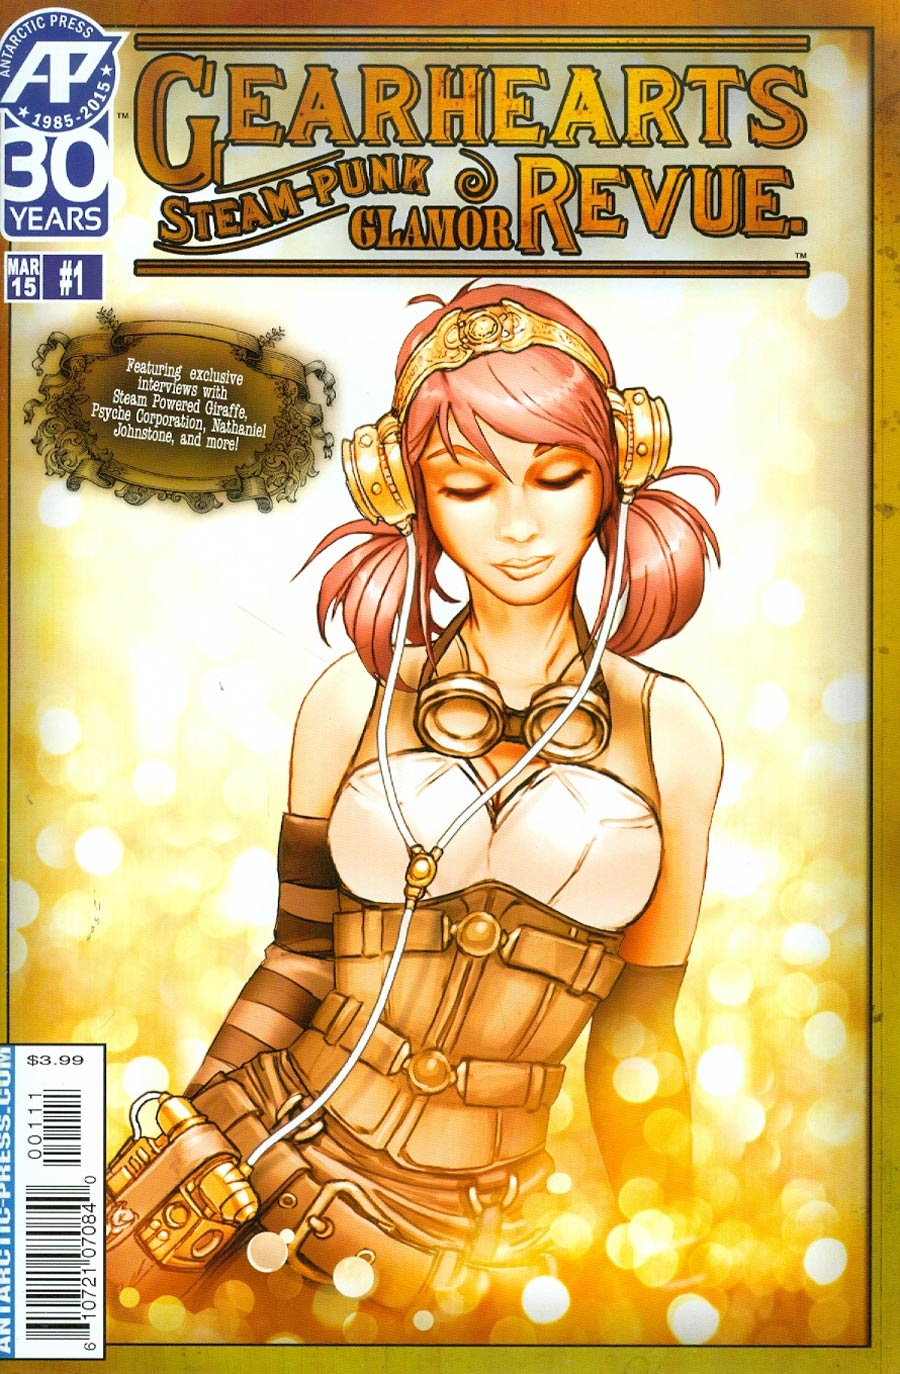 Gearhearts Steampunk Glamor Review Musical Special One Shot